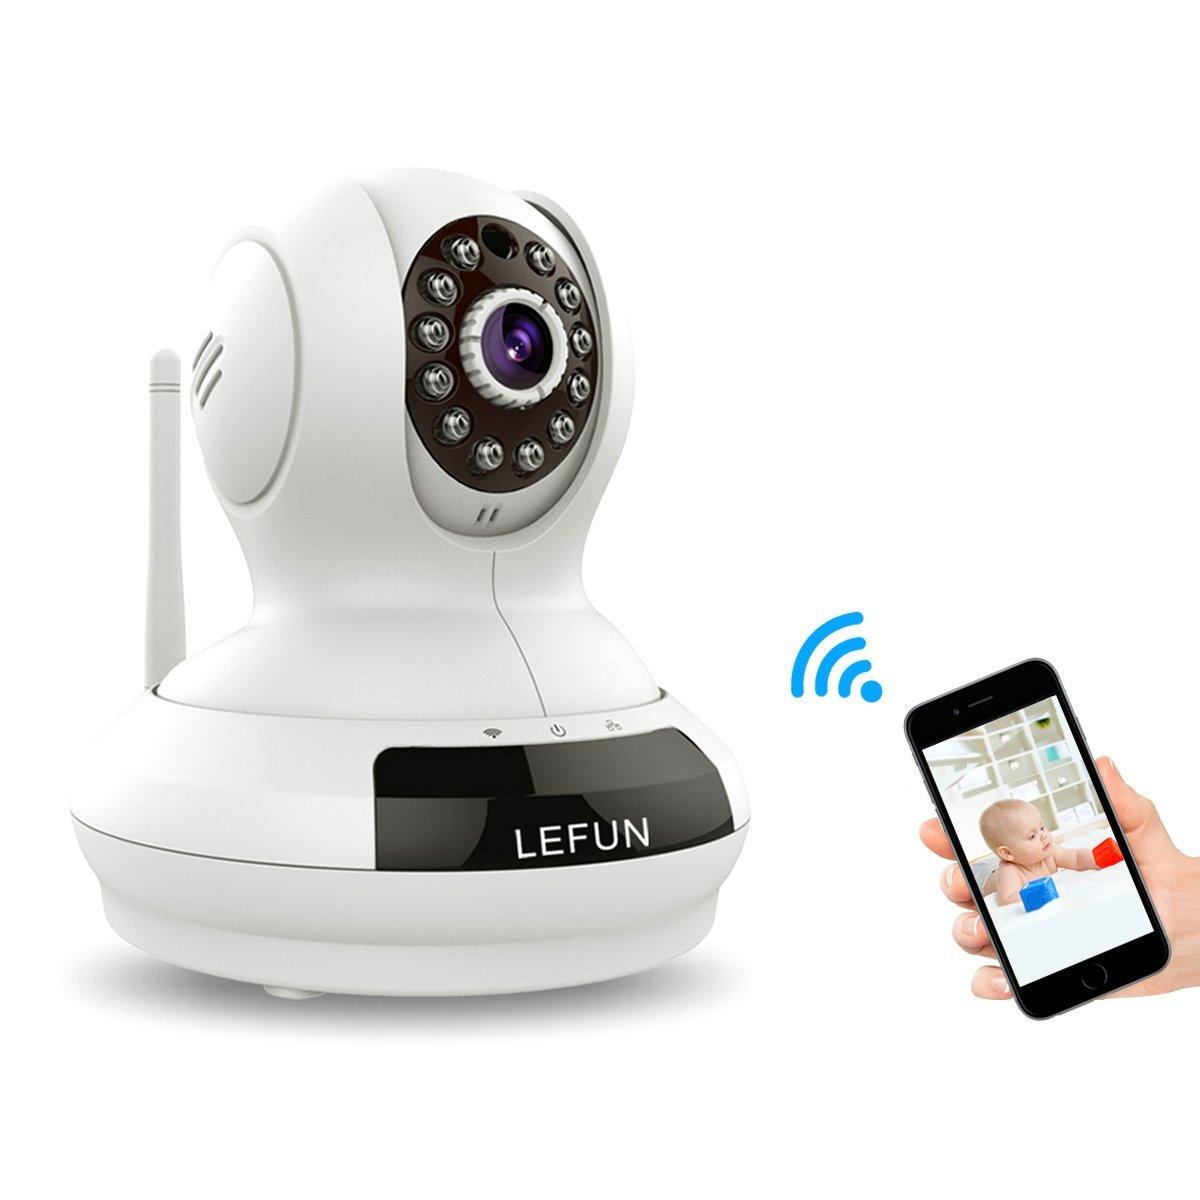 LeFun Baby Monitor Wireless WiFi IP Surveillance Camera